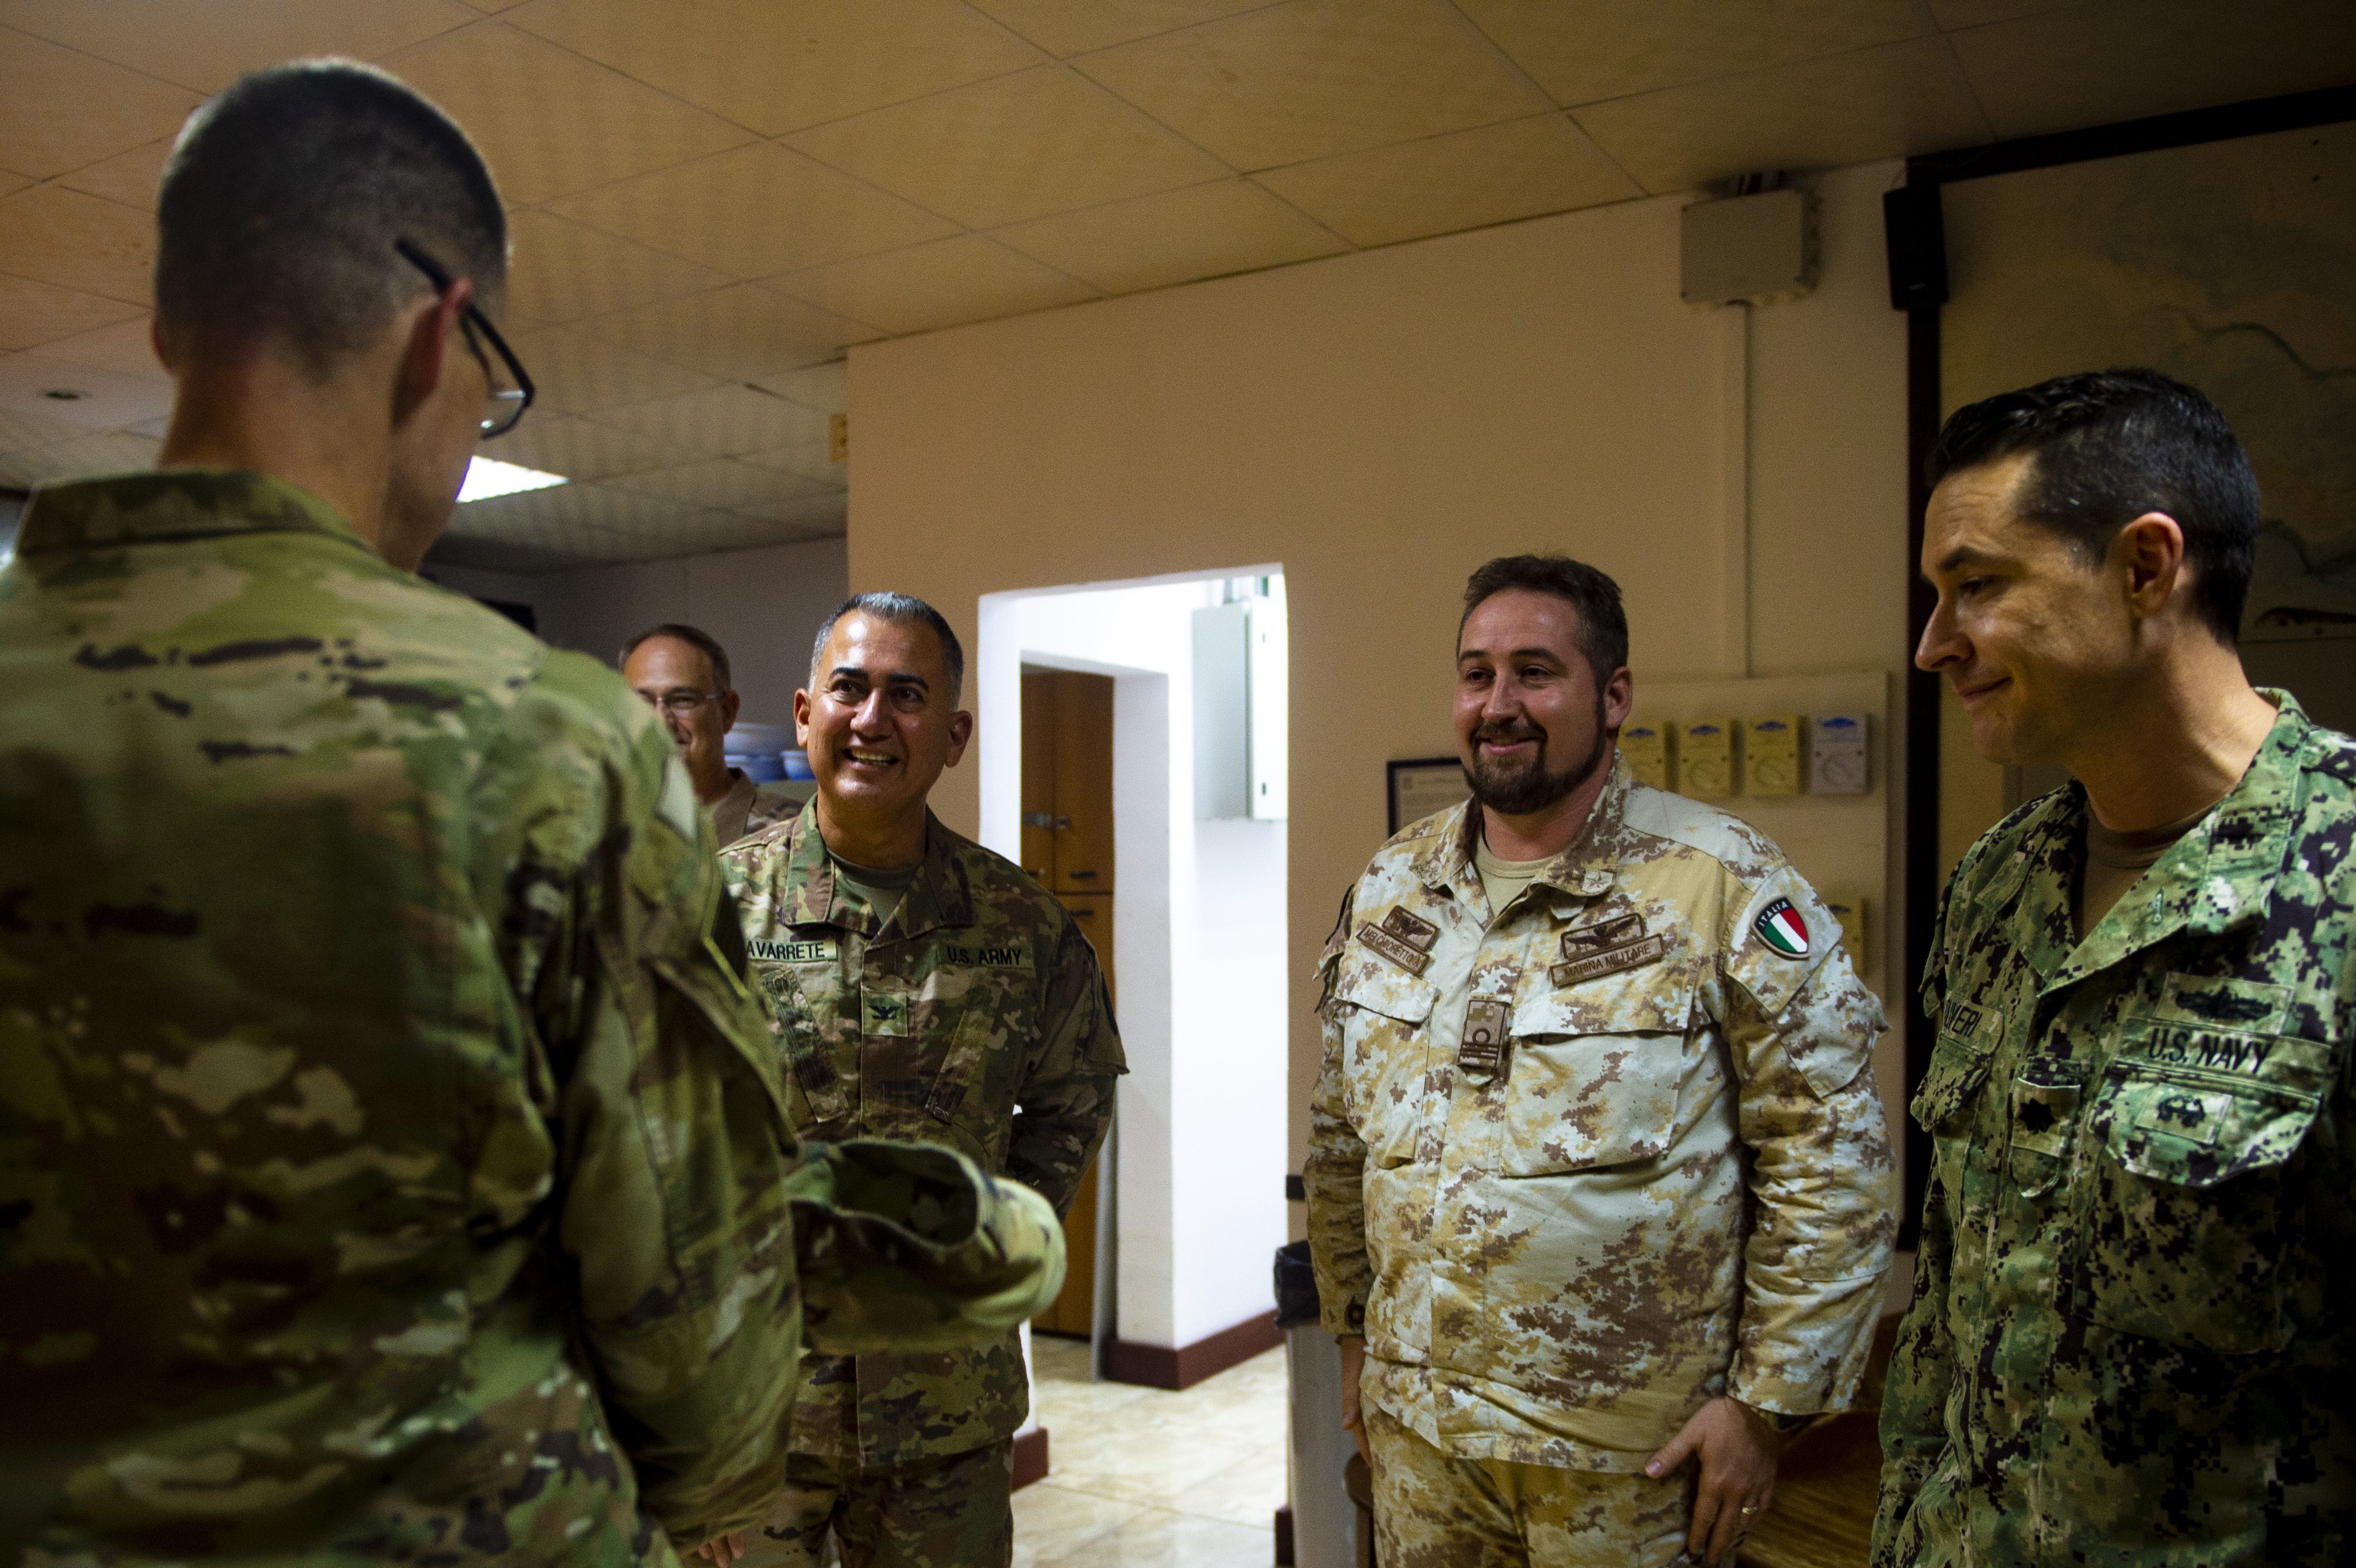 Maj. Gen. Craig hosts social hour with foreign officers.